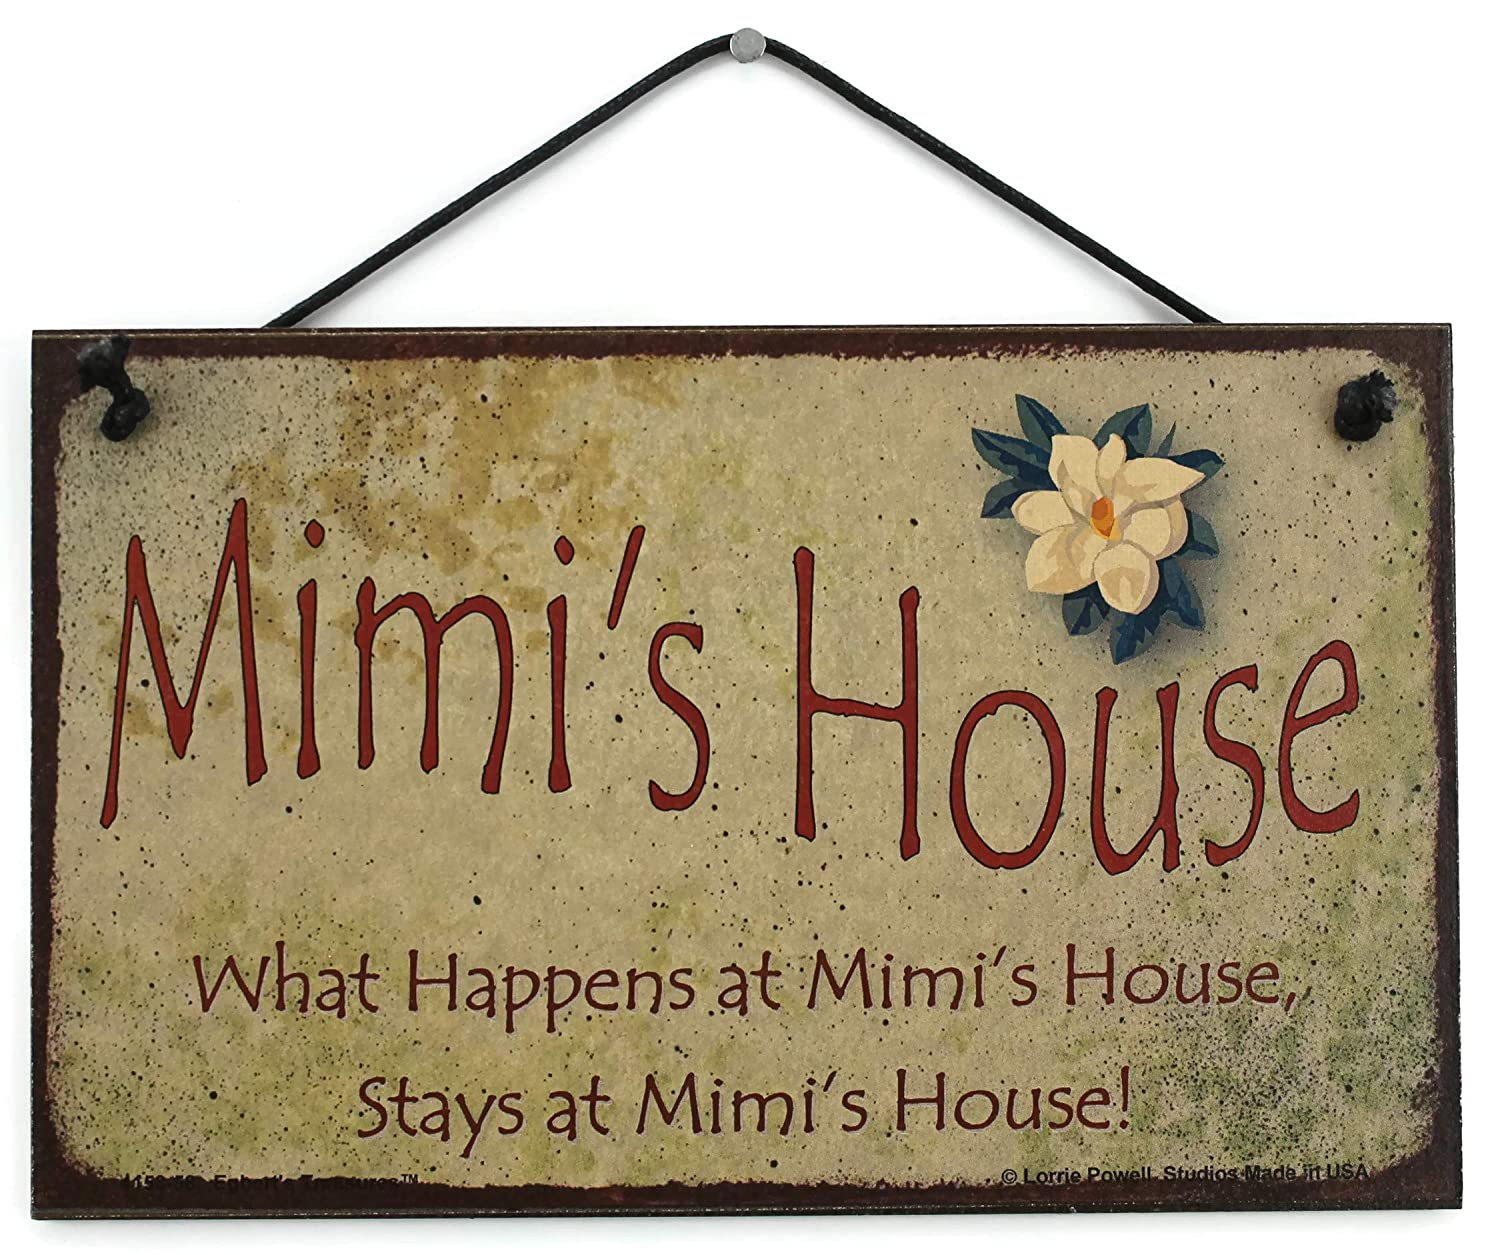 "5x8 Vintage Style Sign with Magnolia Saying, ""Mimi's House What Happens at Mimi's House, Stays at Mimi's House!"" Decorative Fun Universal Household Signs from Egbert's Treasures"